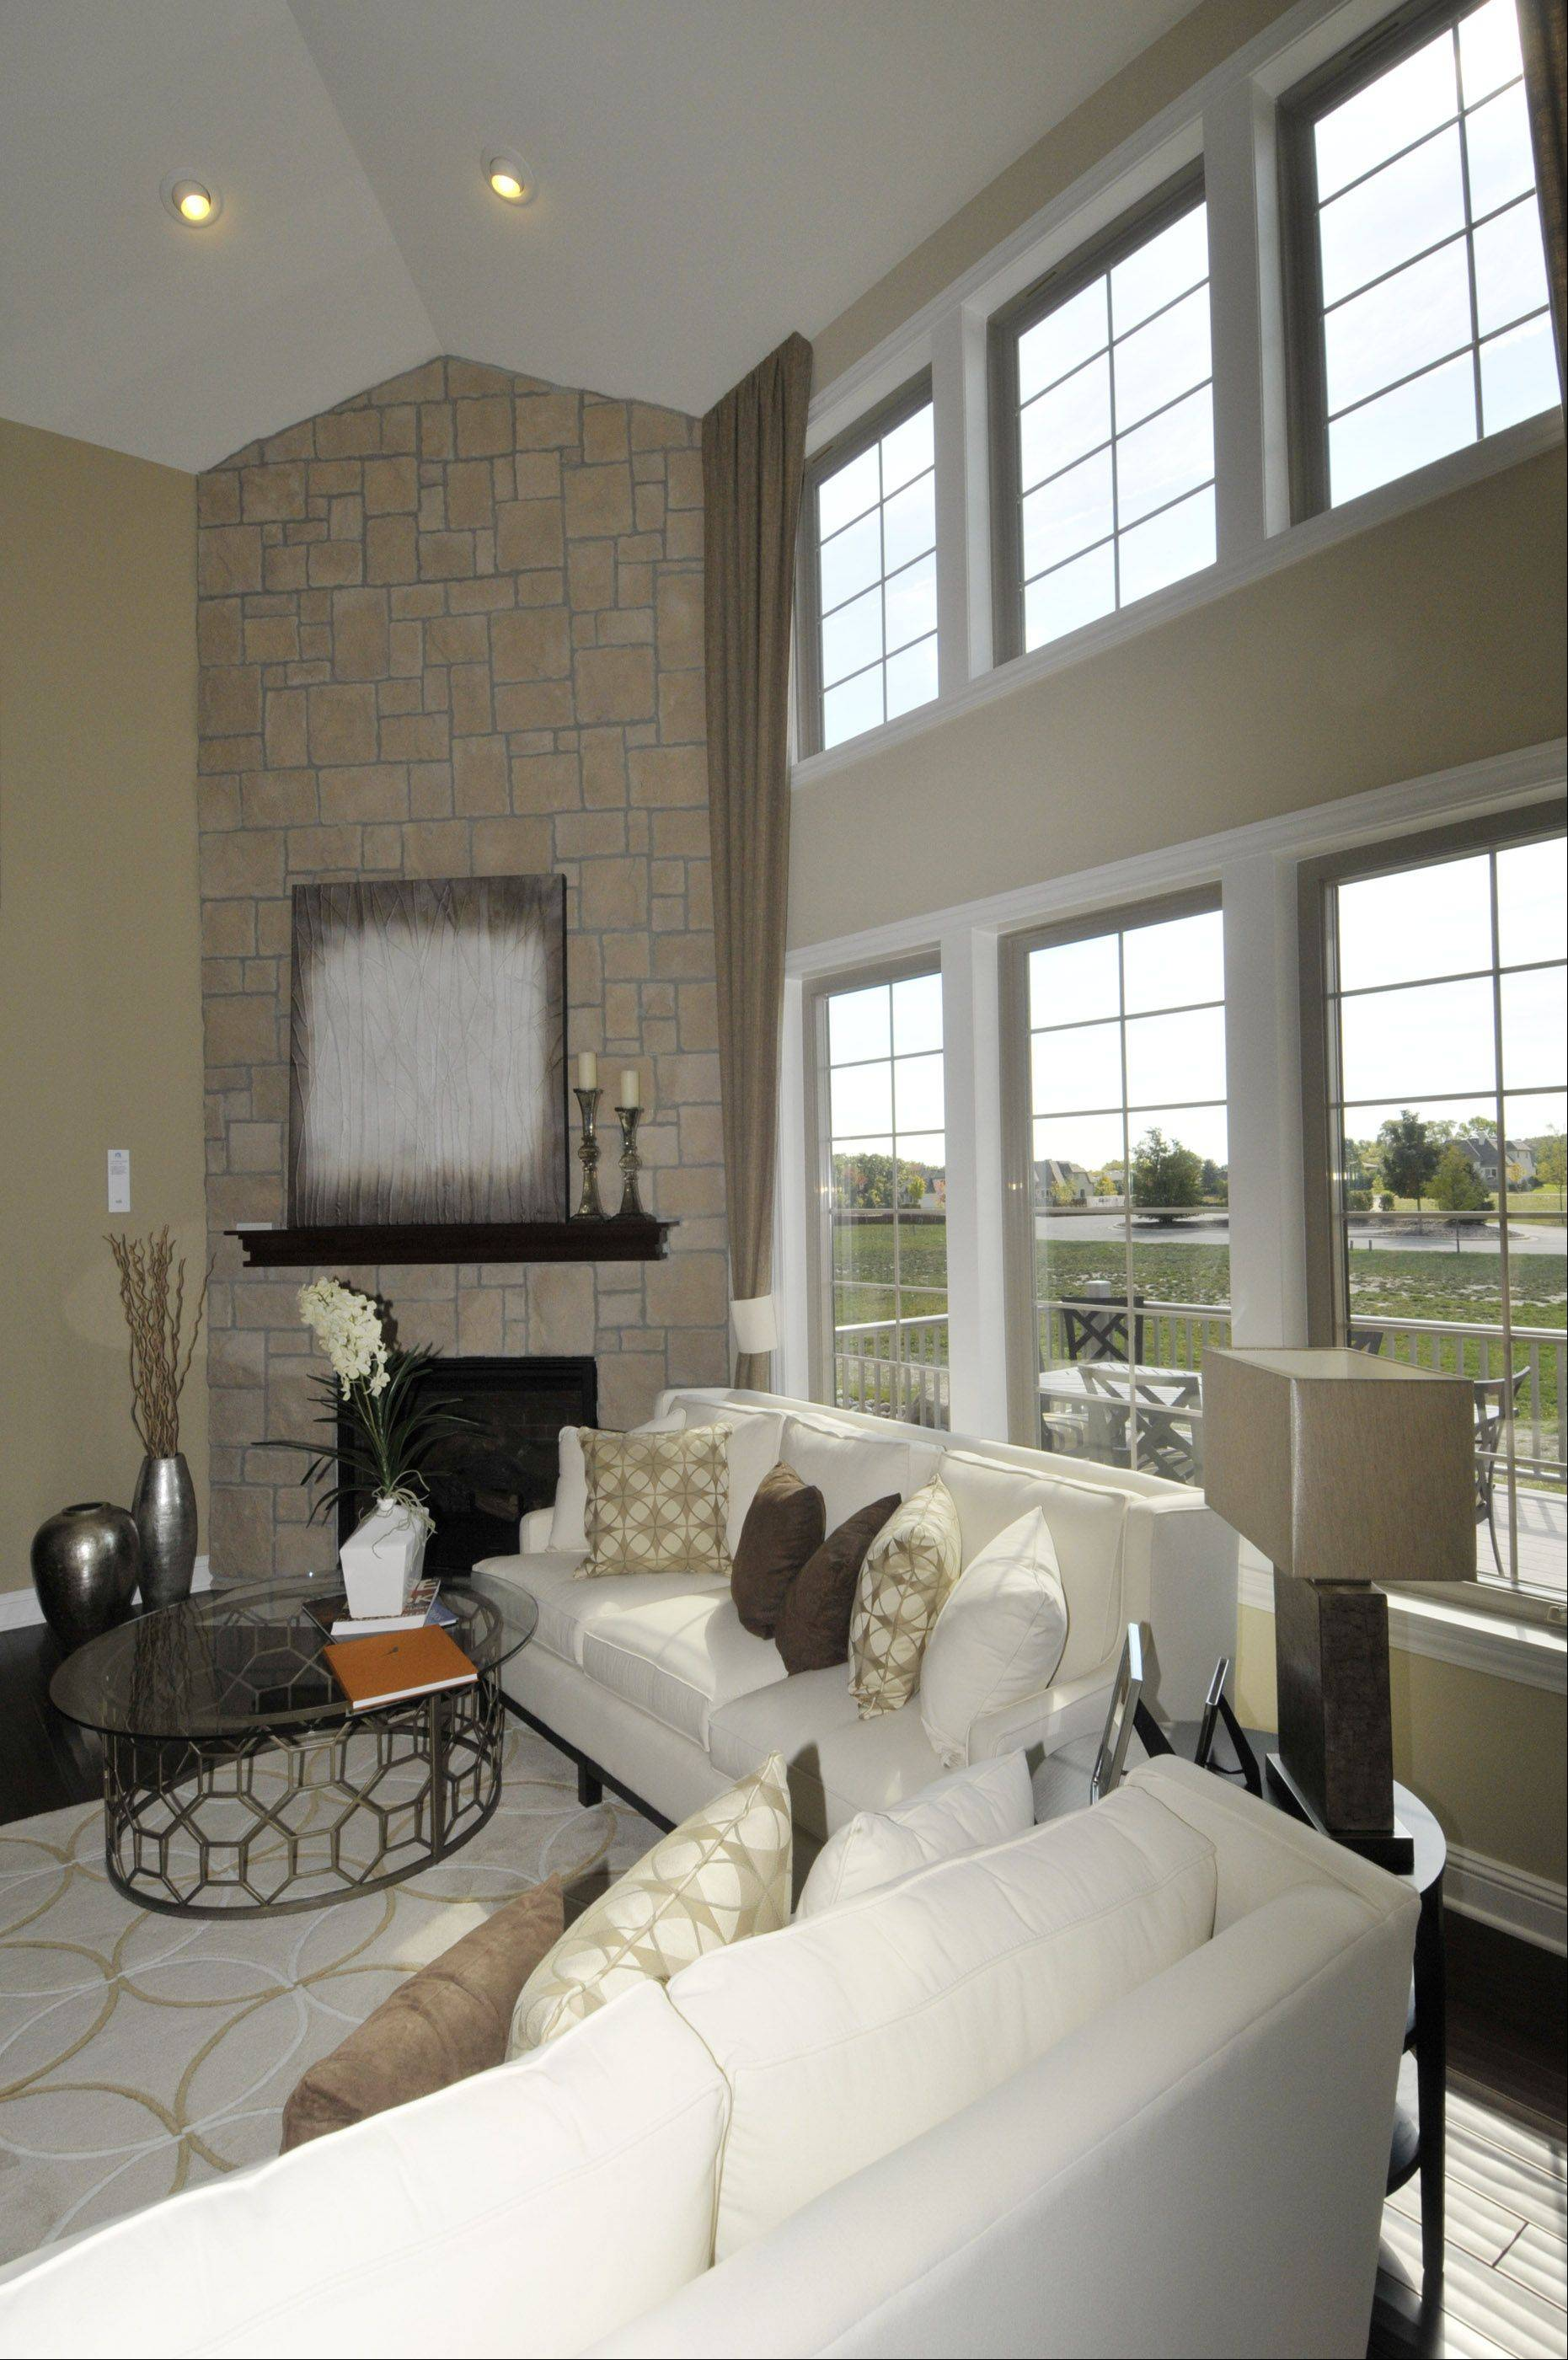 In the family room, a corner stone fireplace and a wall of windows provide the focal point.